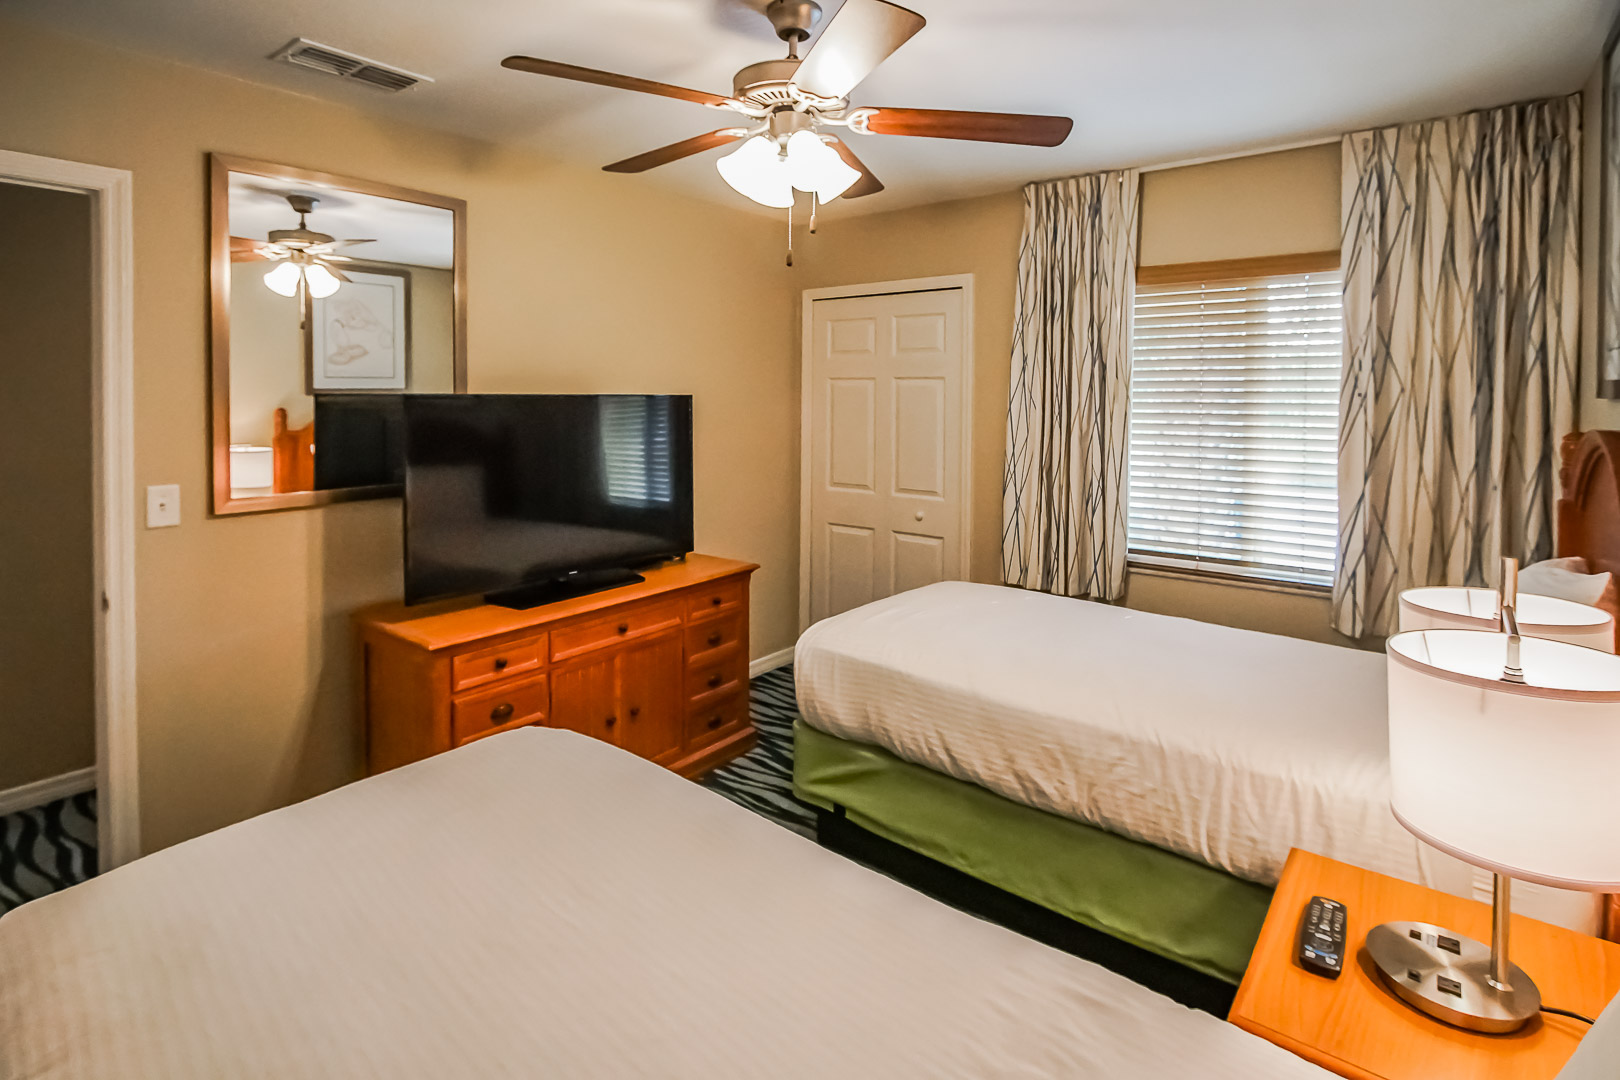 A spacious 2 bedroom unit at VRI's Fantasy World Resort in Florida.